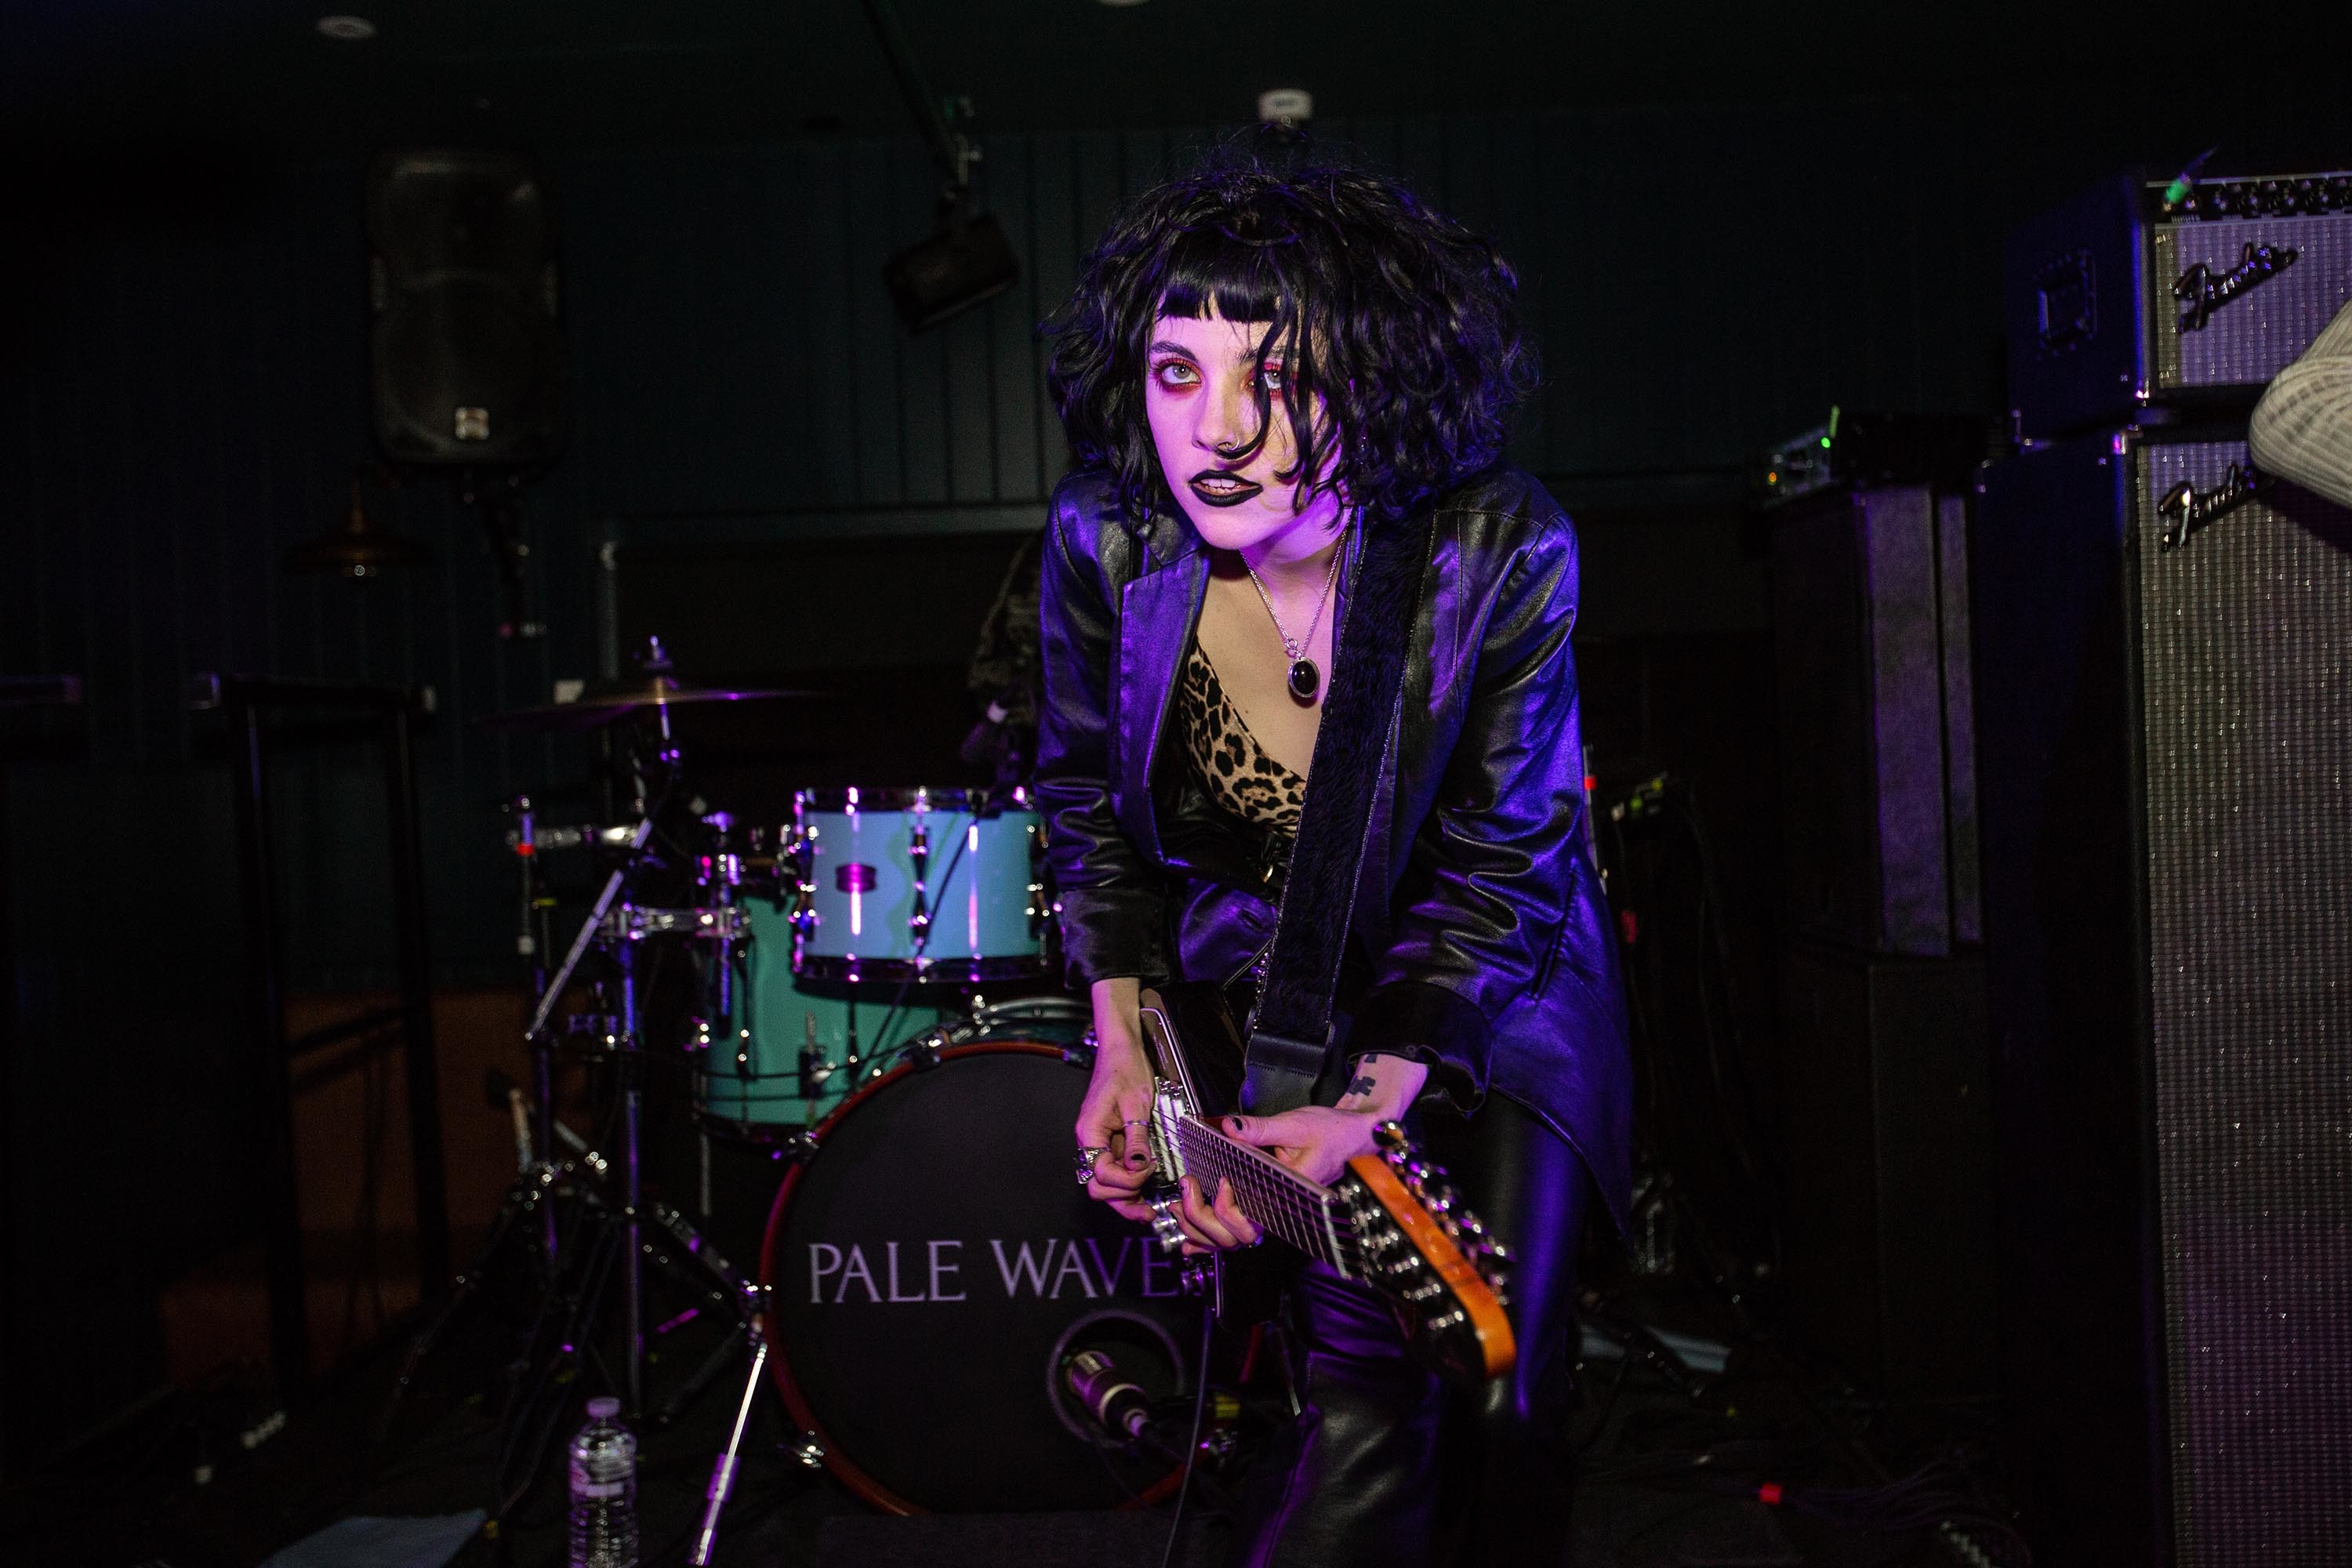 Pale Waves, Snail Mail, Soccer Mommy and more start The Great Escape 2018 with a smash